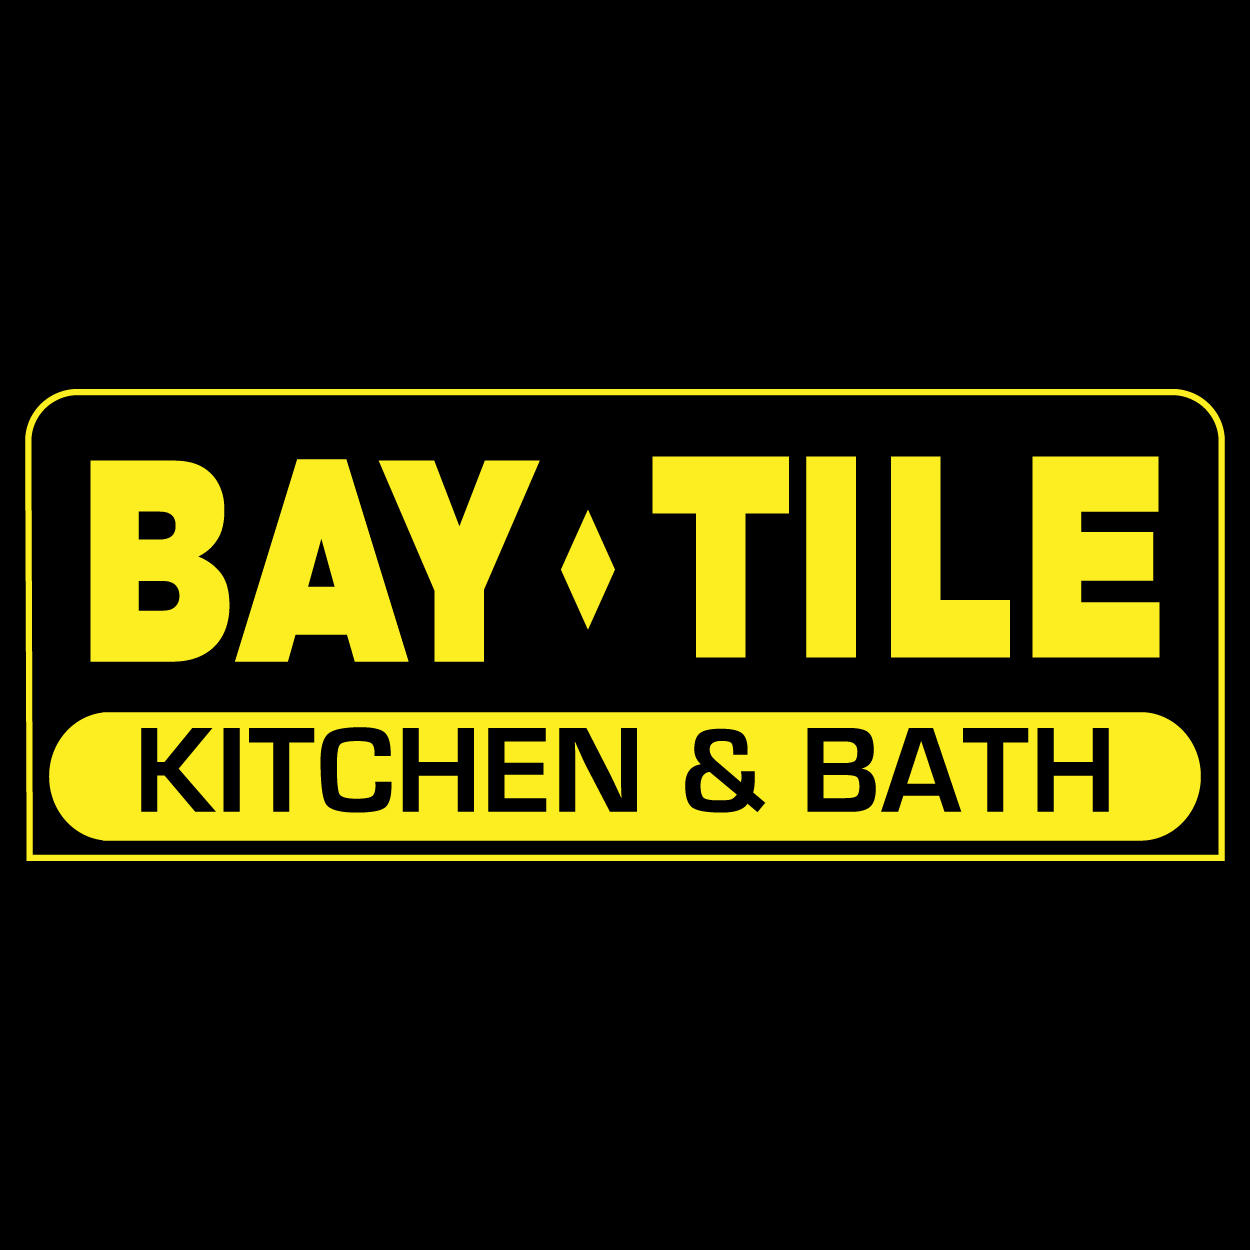 Bay Tile Kitchen Bath 2519 N Mcmullen Booth Rd Clearwater Fl Home Improvements Mapquest